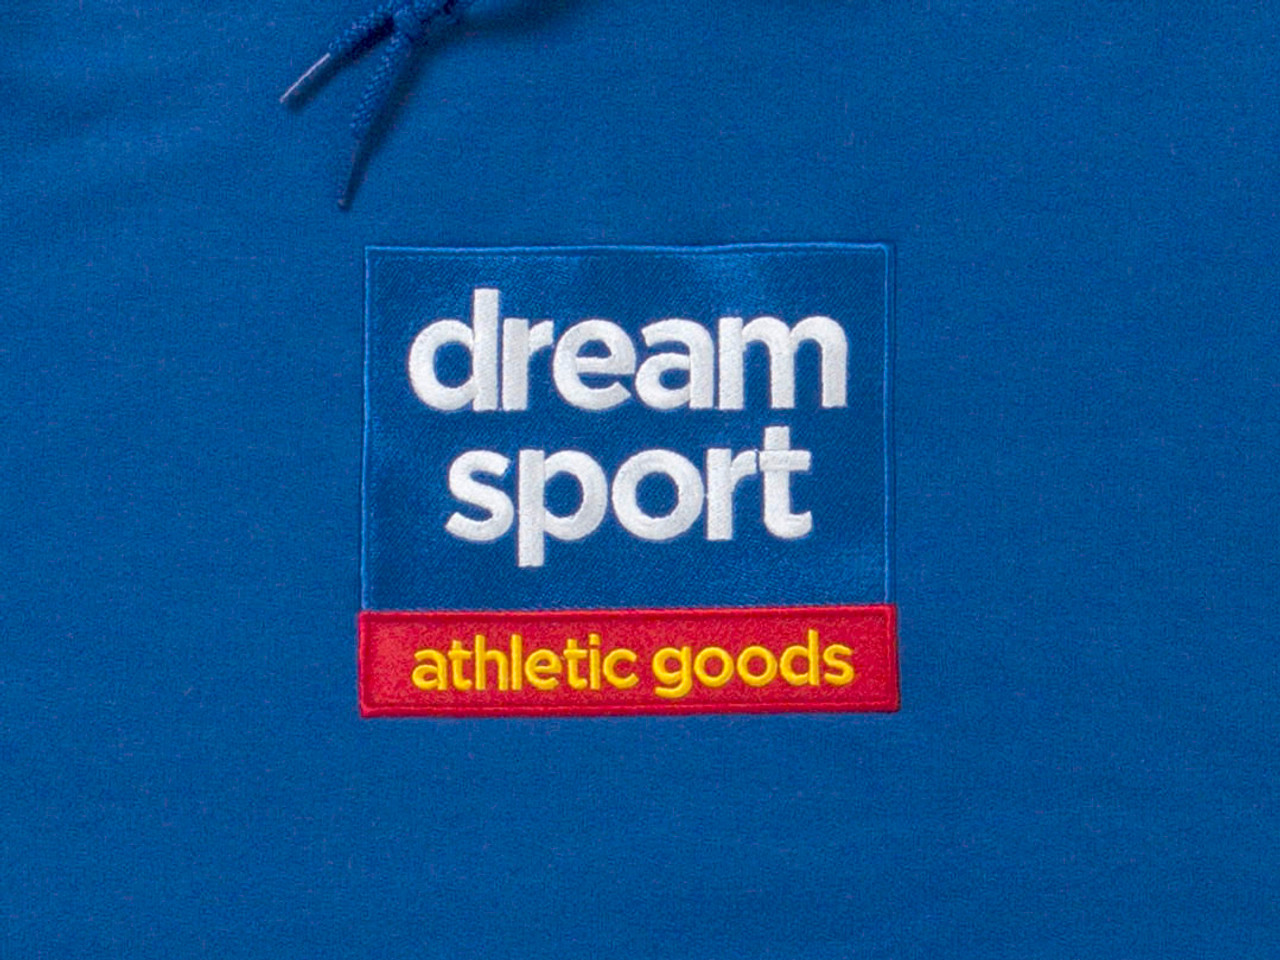 Royal Blue Hoodie With Dream Sport Athletic Goods Design